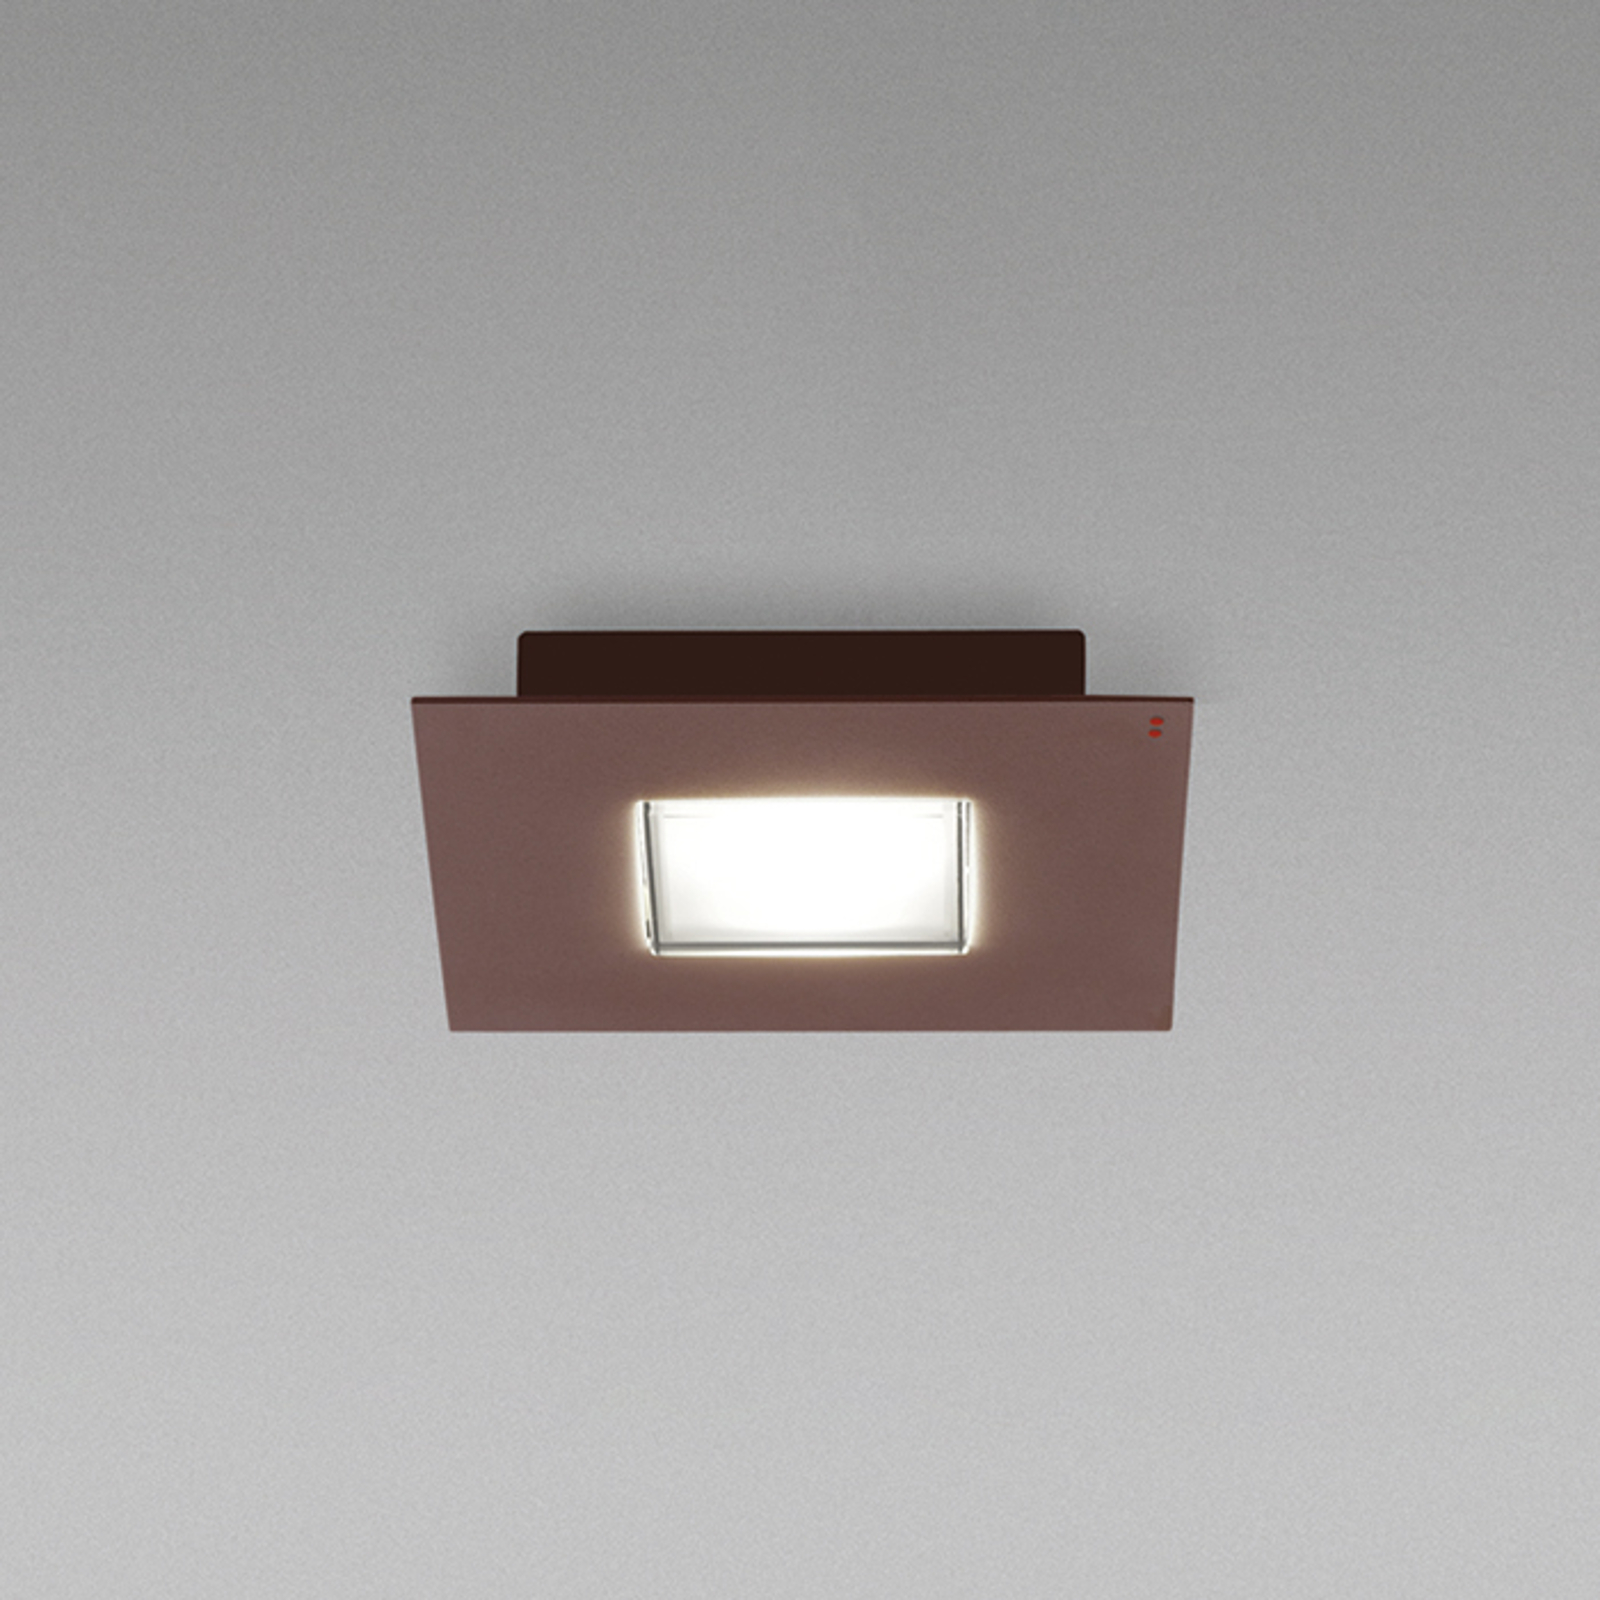 Quarter - a LED ceiling lamp with a brown rim_3503236_1